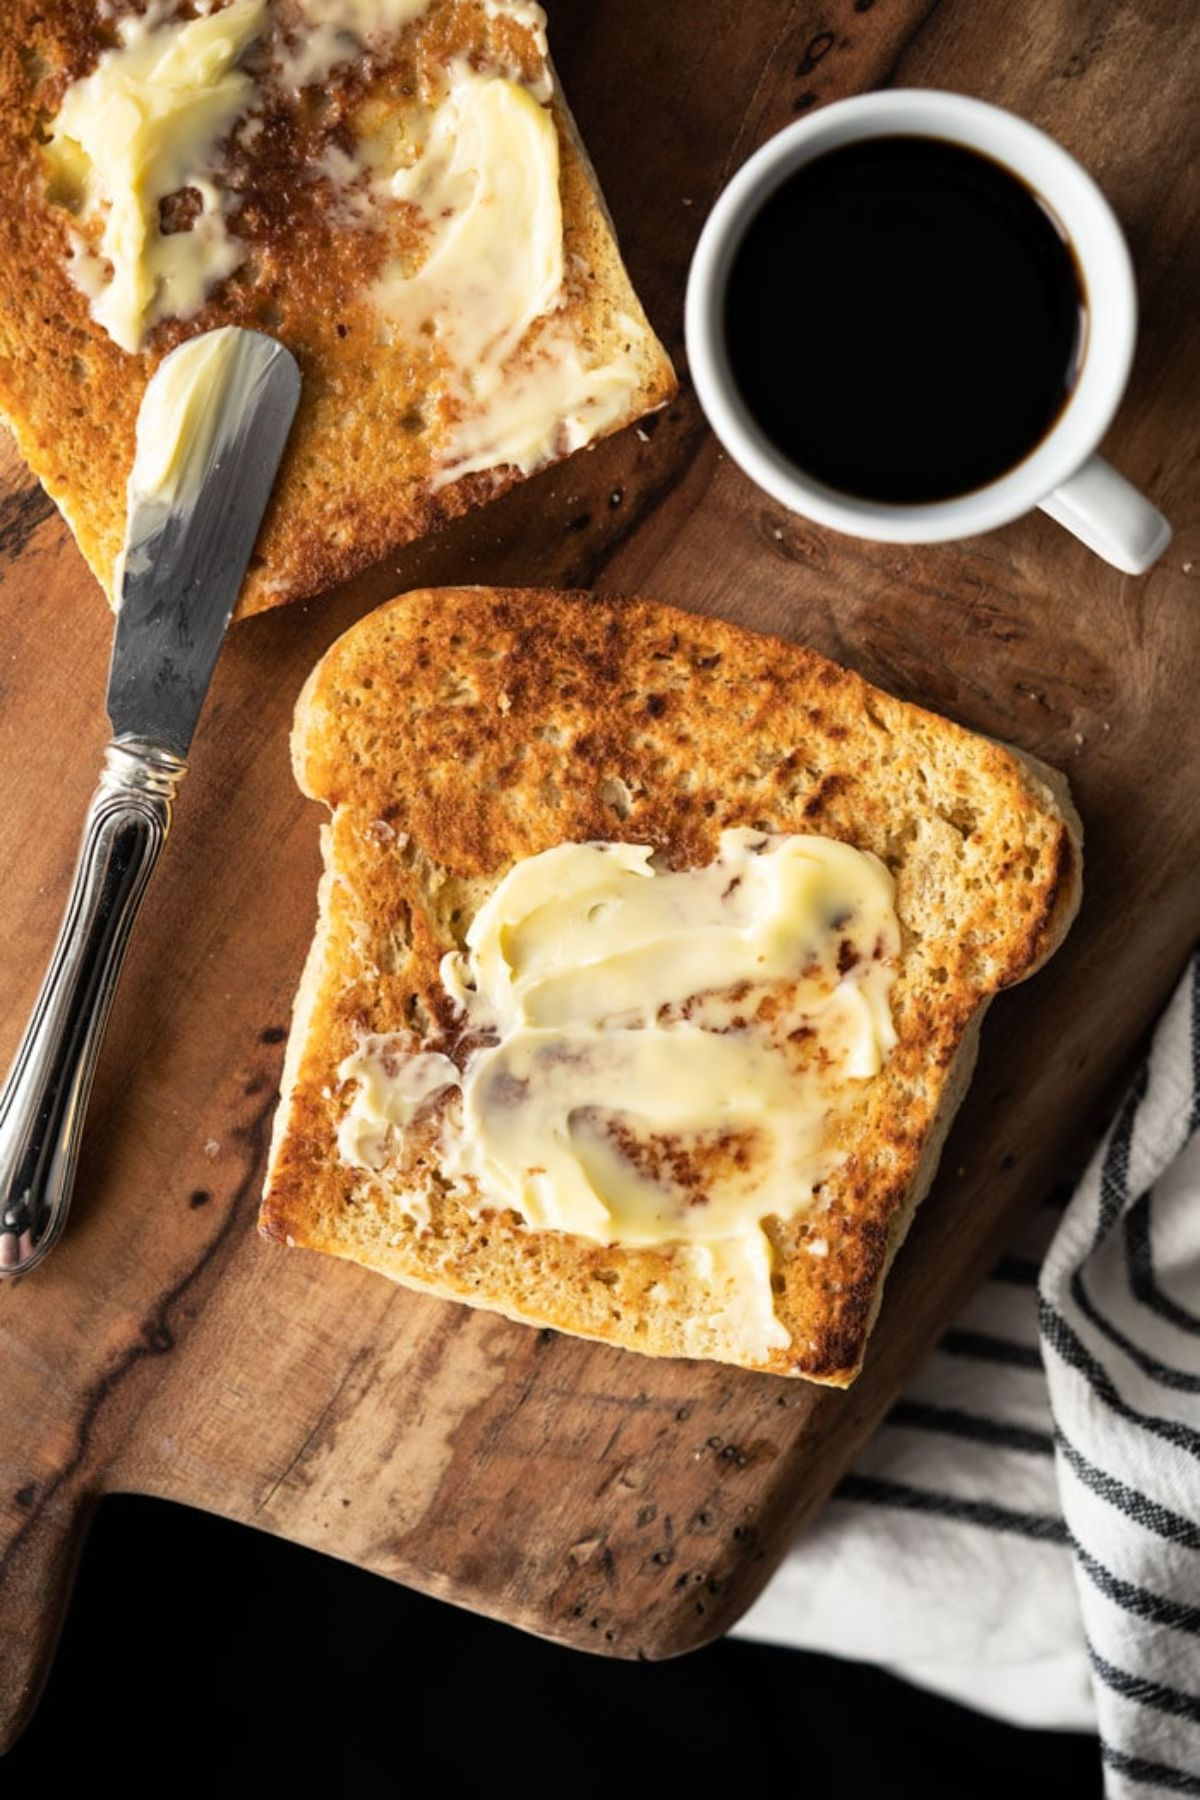 On a wooden board are 2 slices of bread with butter spread on them. A butter knife rests on one of the slices and a white cup of black coffee is at the top